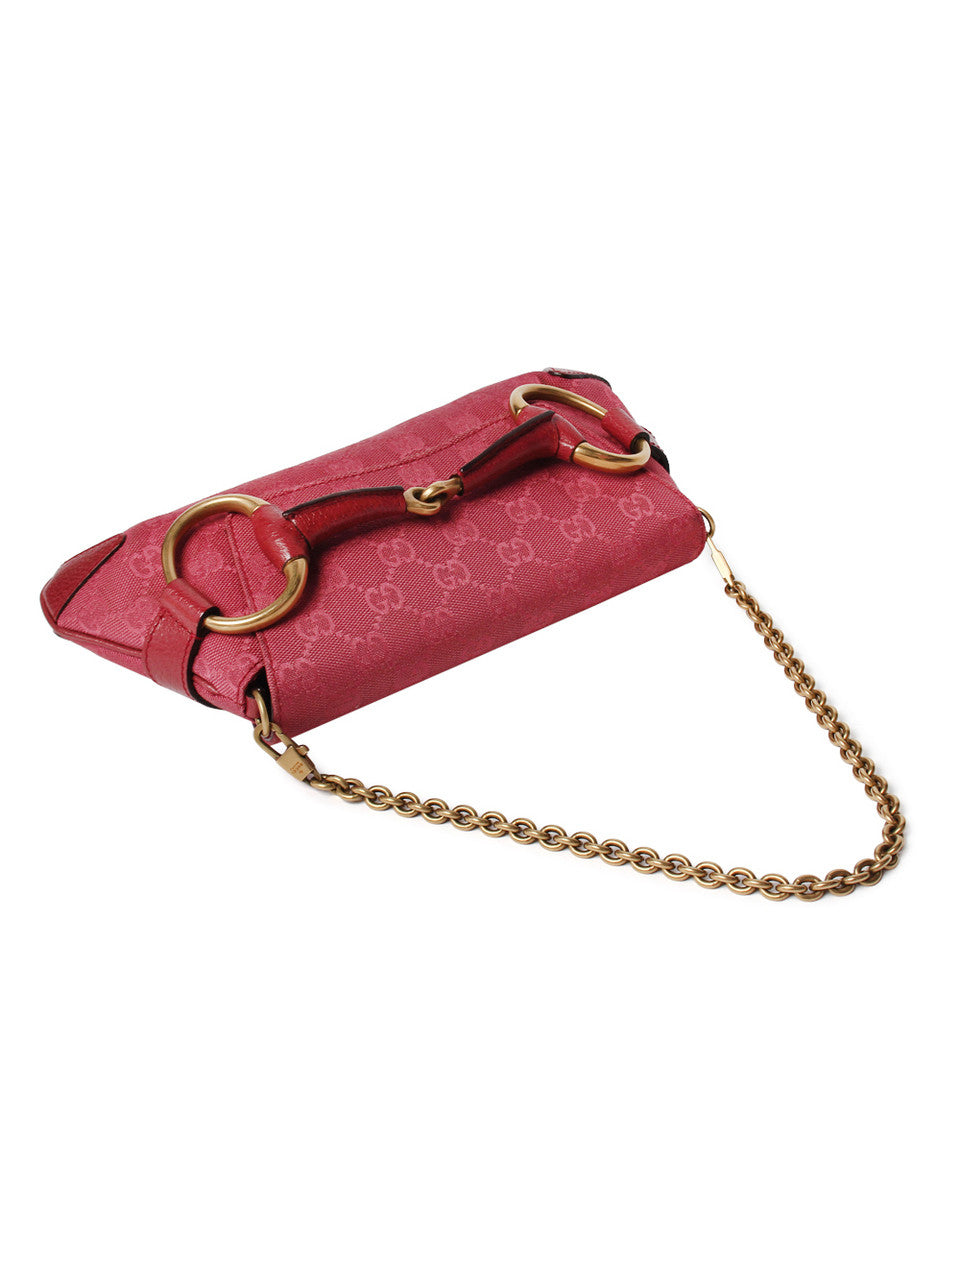 Gucci Rose Canvas Horsebit Shoulder Bag